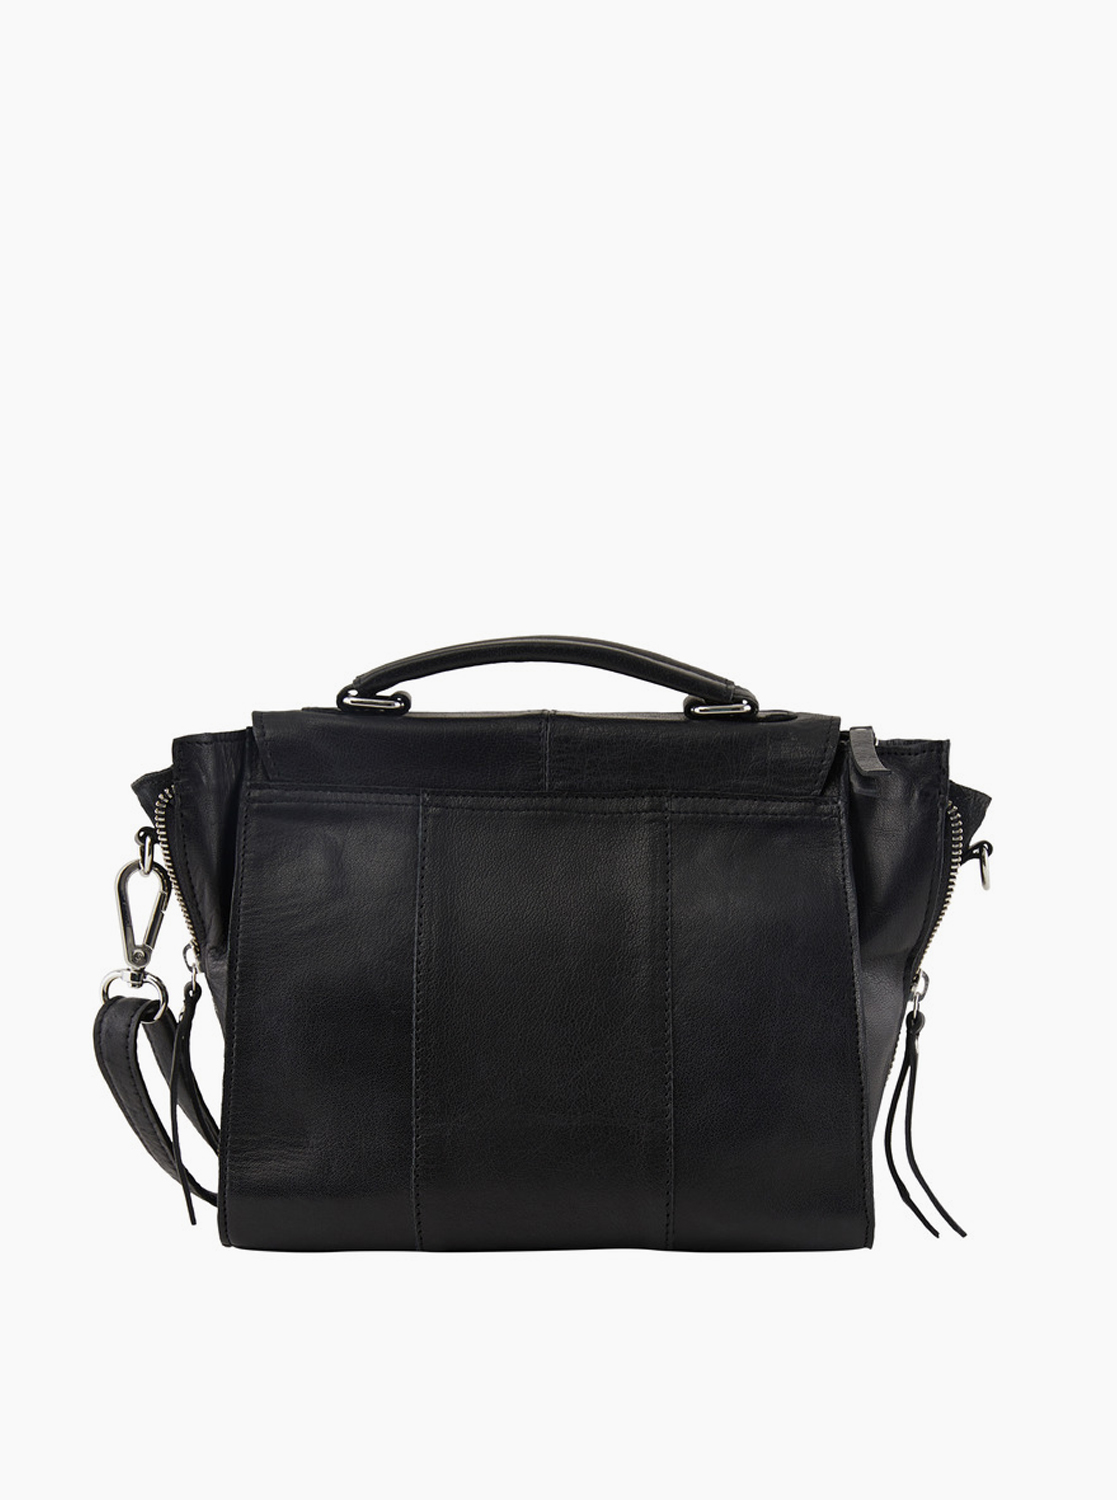 Borsa a tracolla in pelle nera Pieces